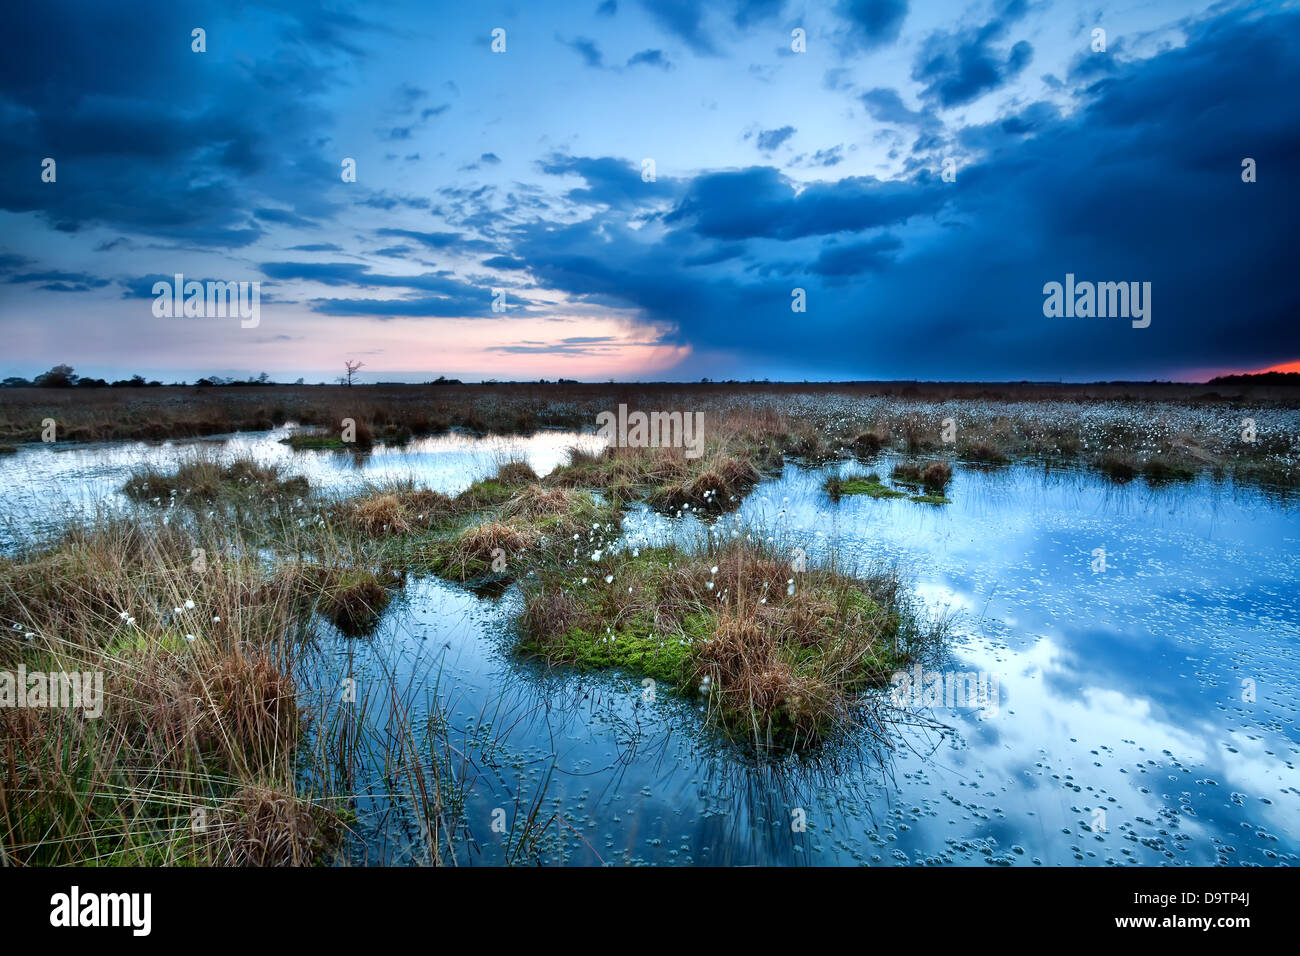 dark storm clouds over lake at sunset, Fochteloerveen - Stock Image